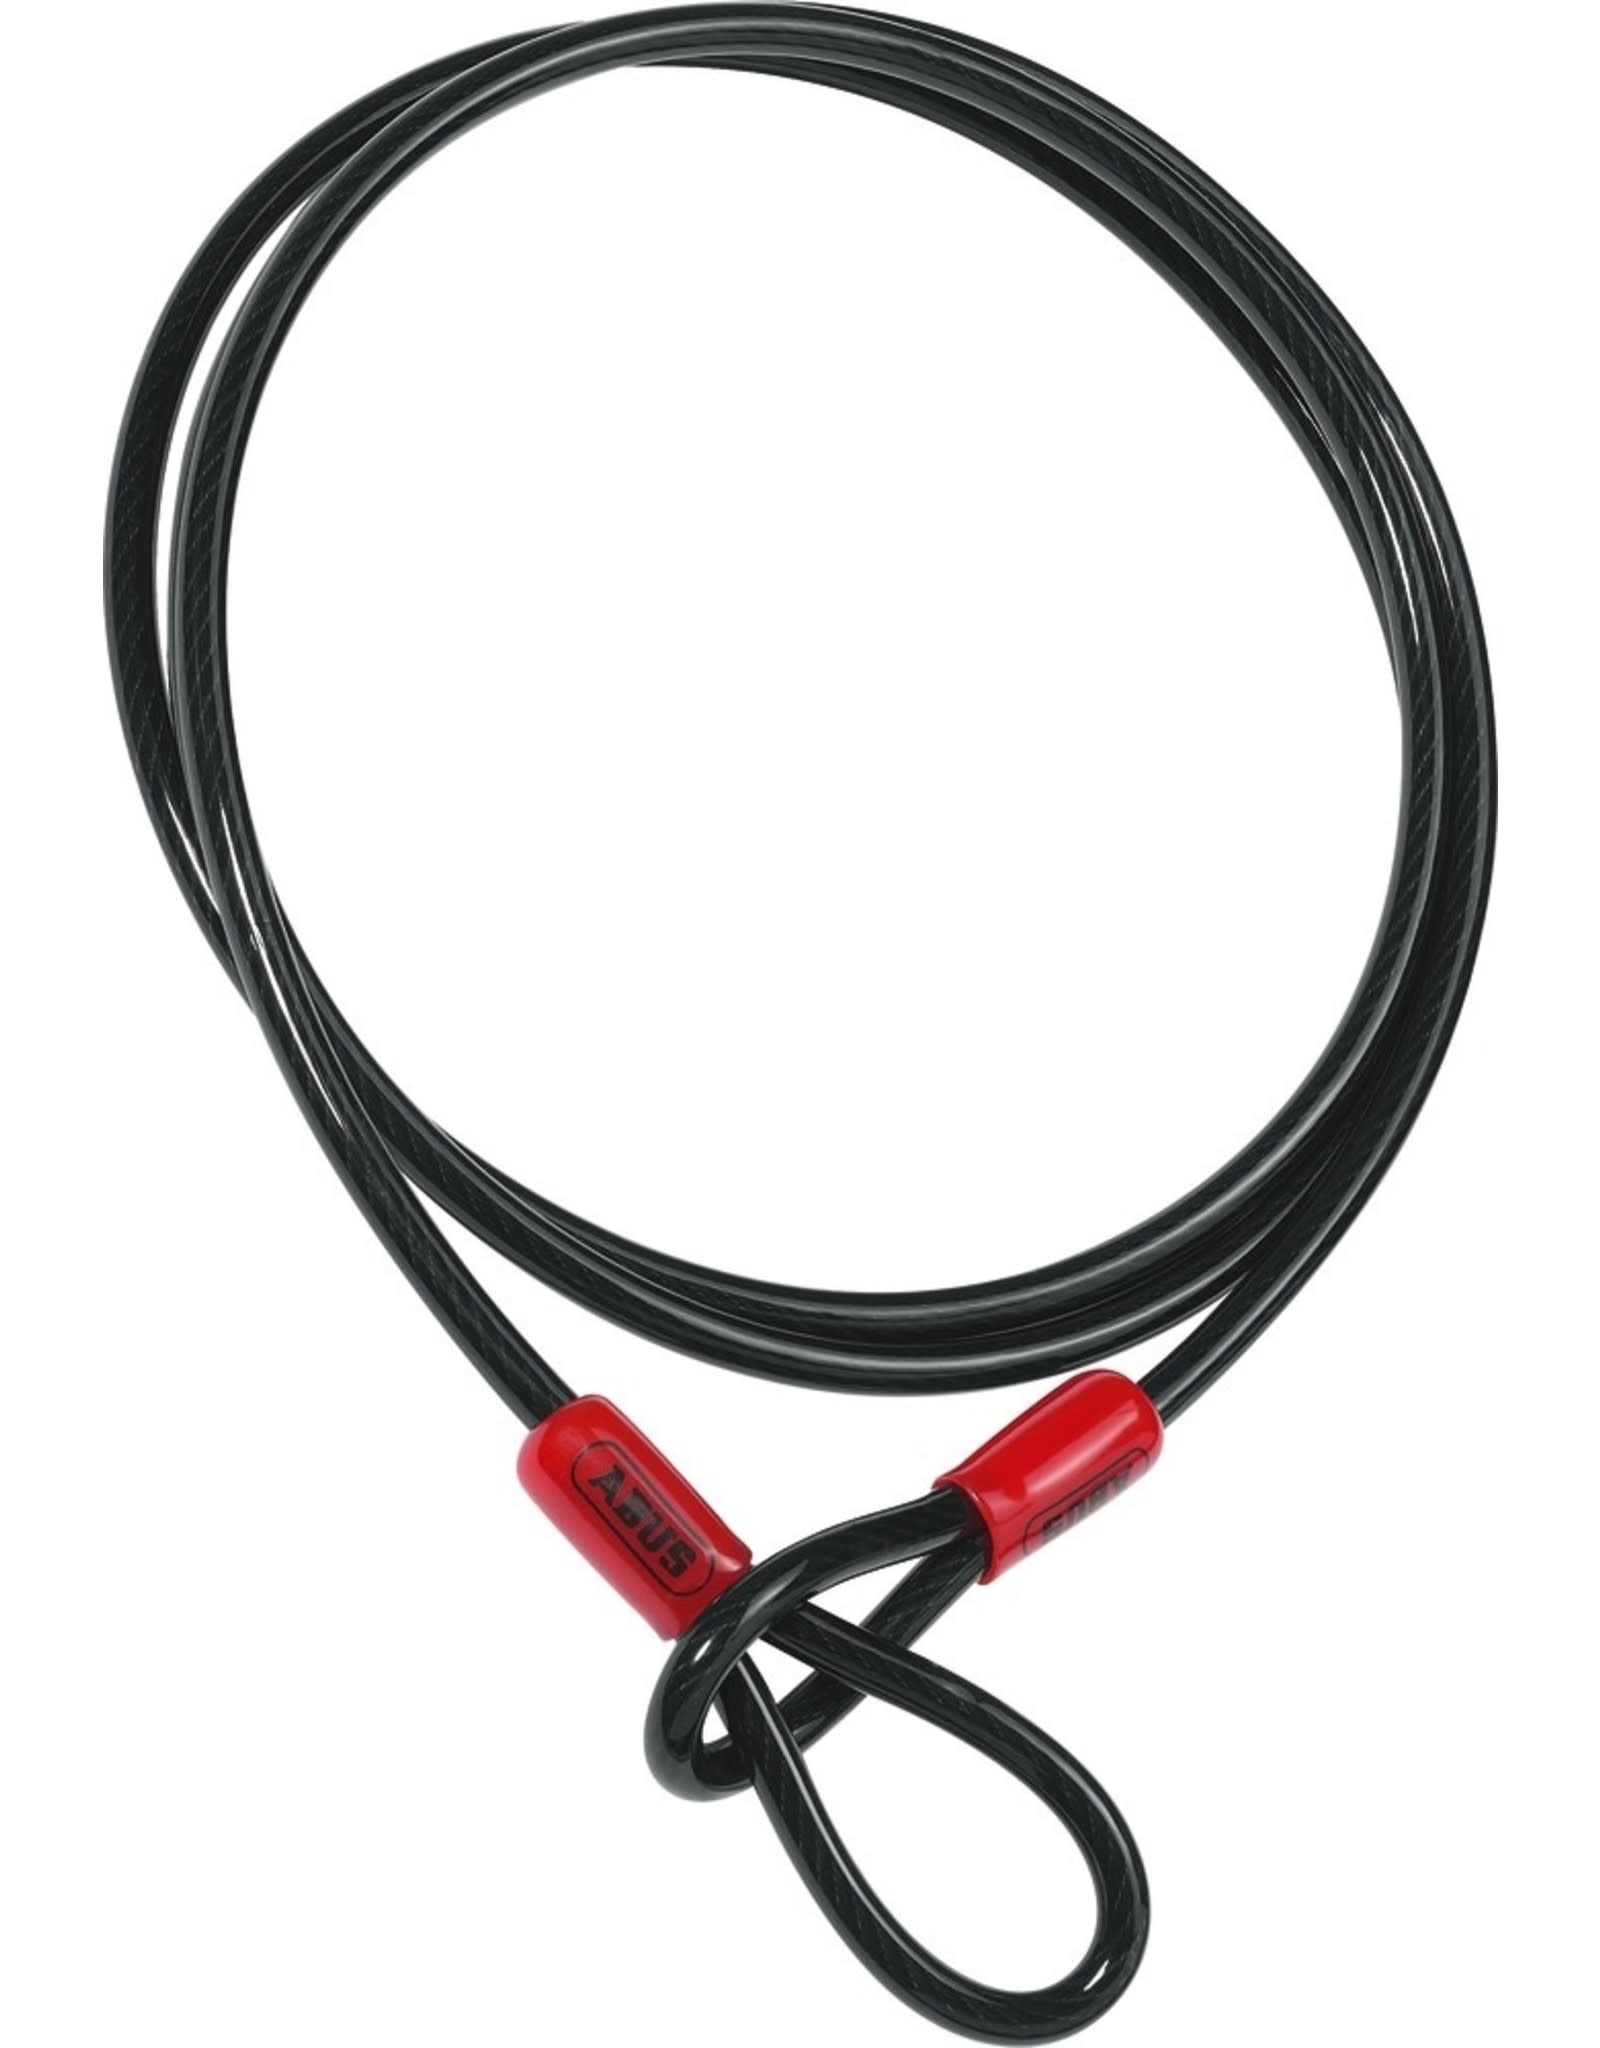 ABUS Cable Cobra Loopcable 4' Black